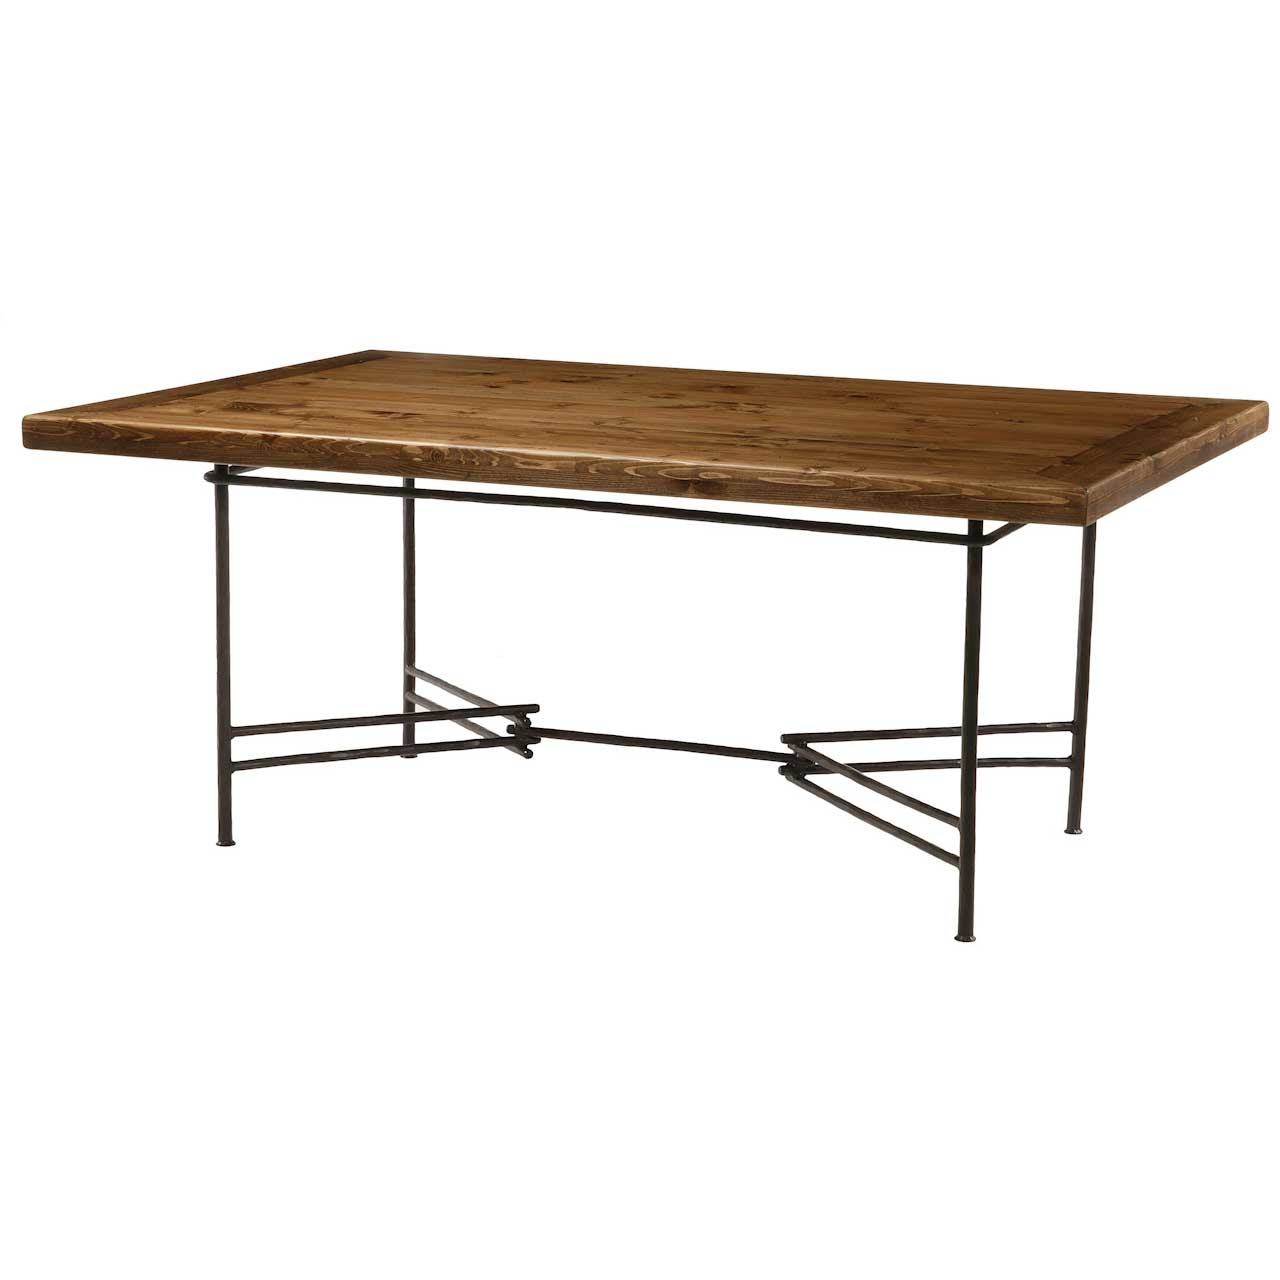 Dining table wood dining table wrought iron base for On the dining table